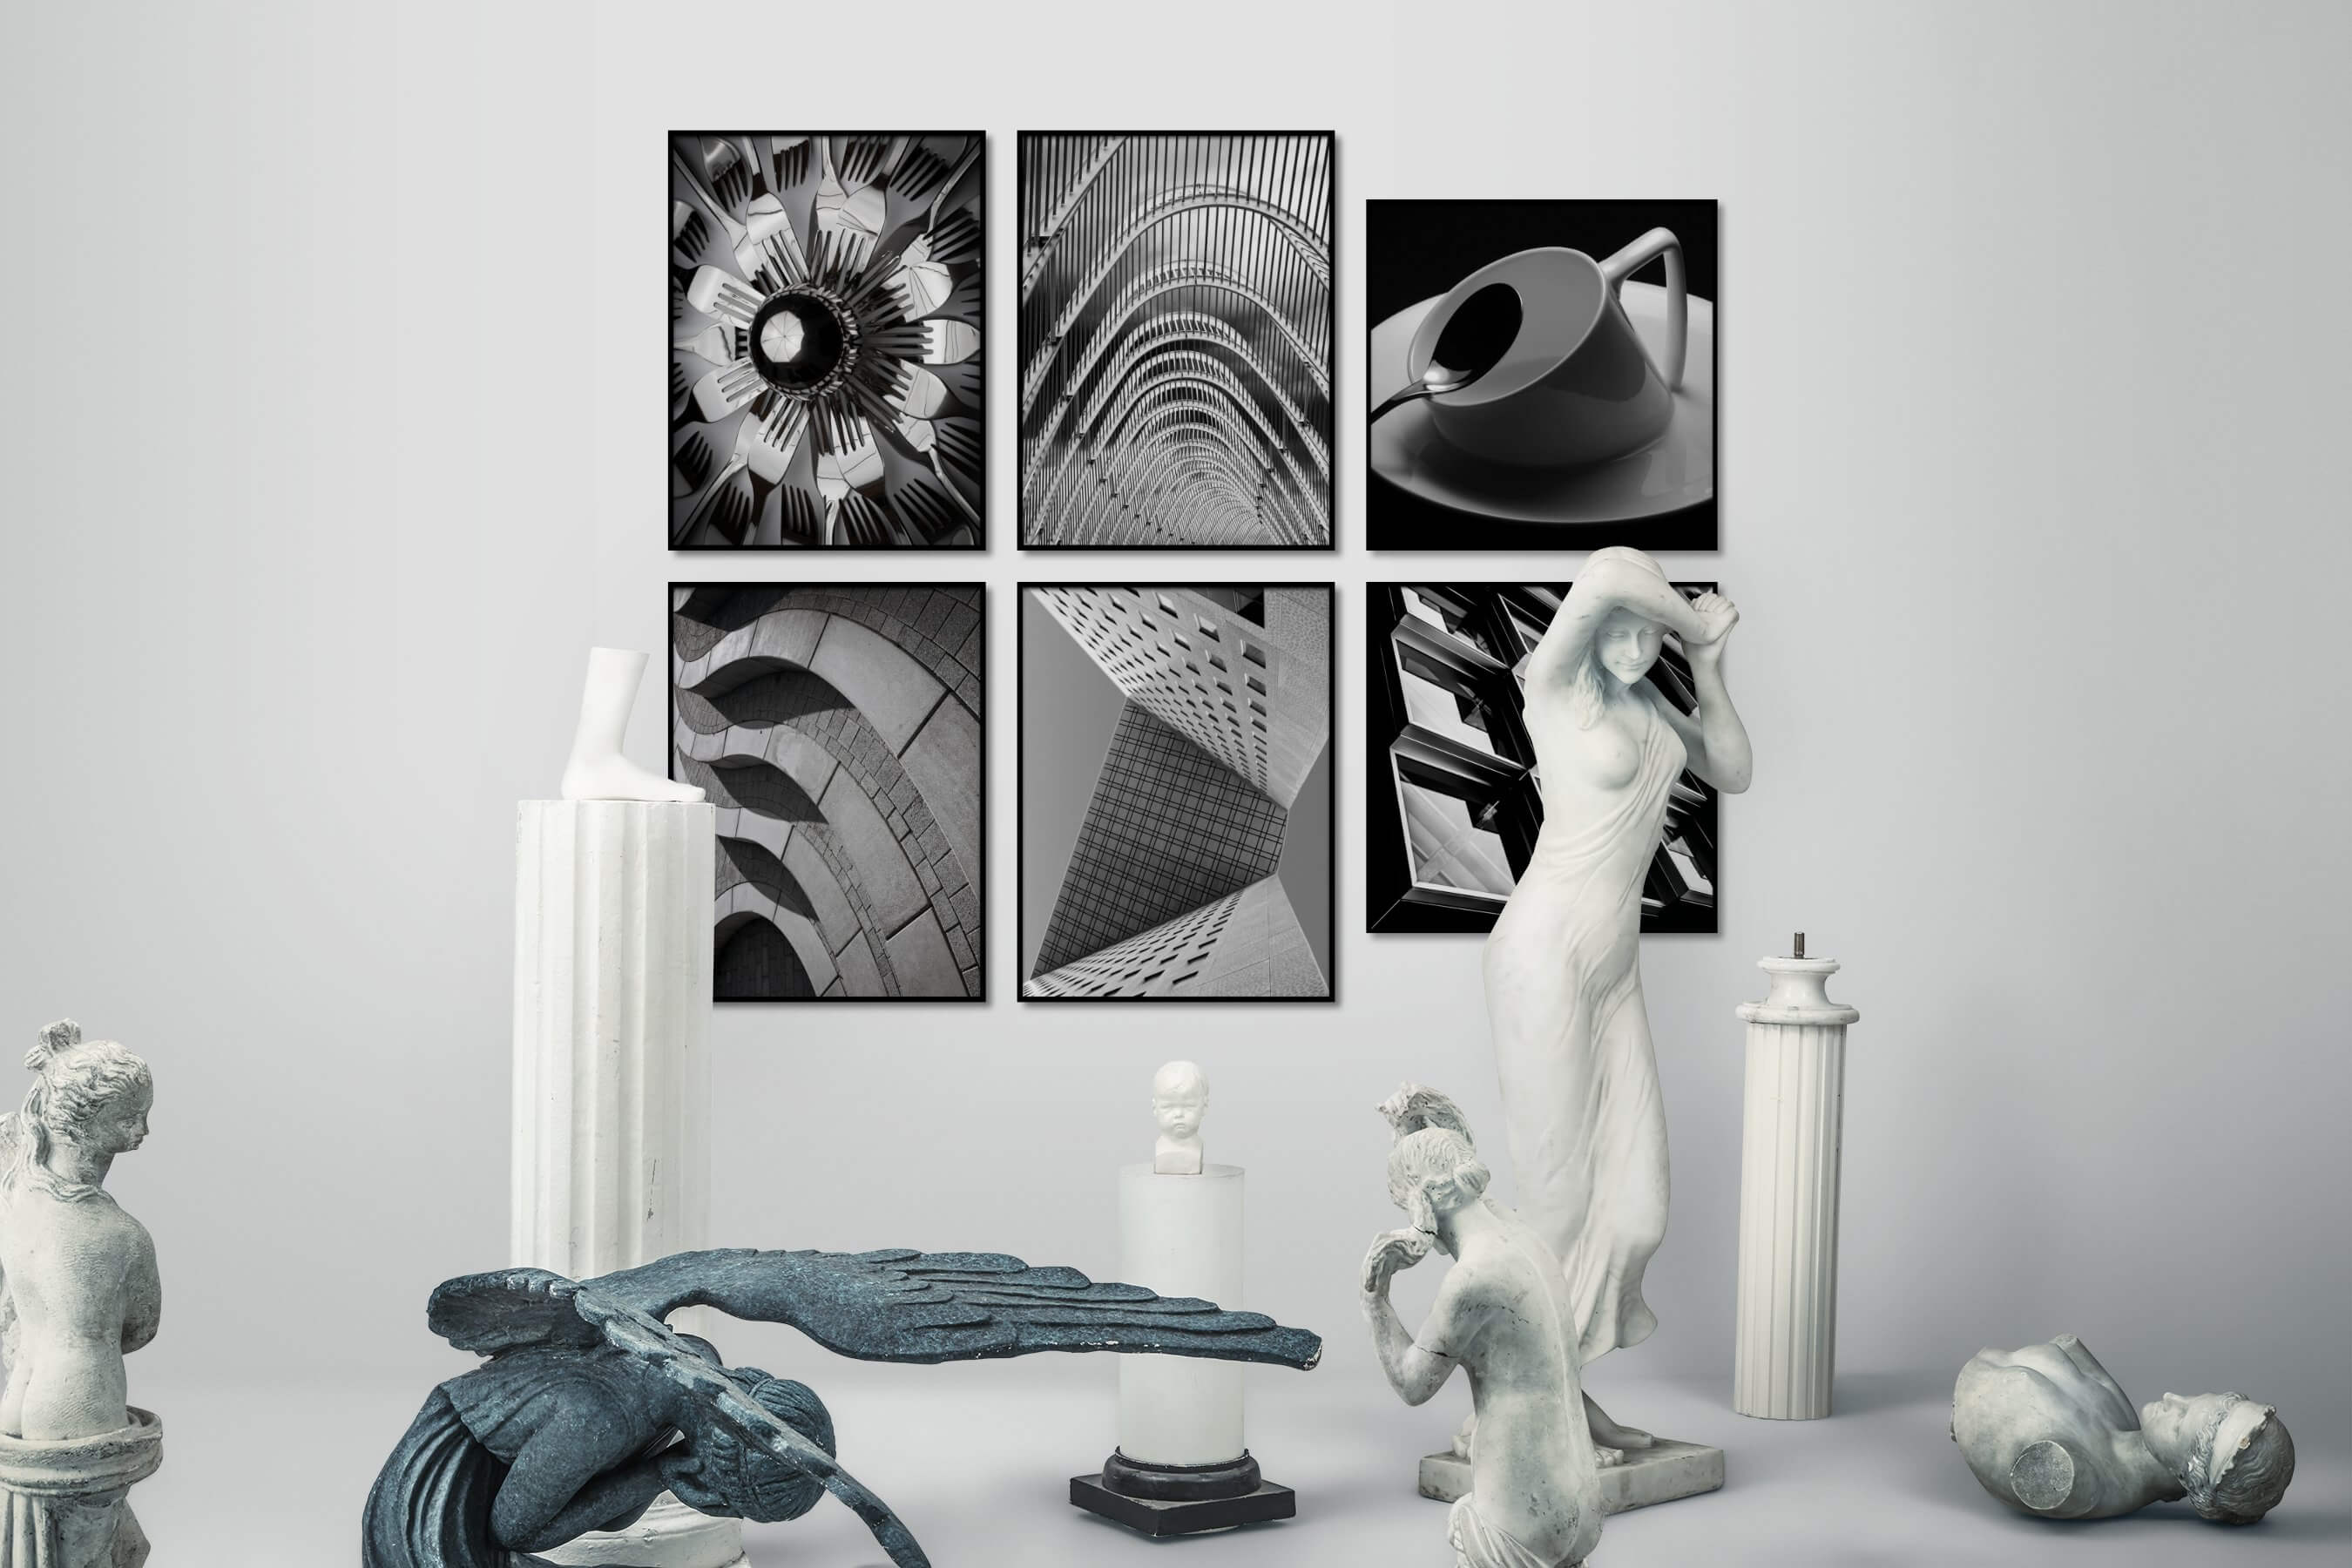 Gallery wall idea with six framed pictures arranged on a wall depicting Black & White, For the Maximalist, For the Moderate, and Artsy